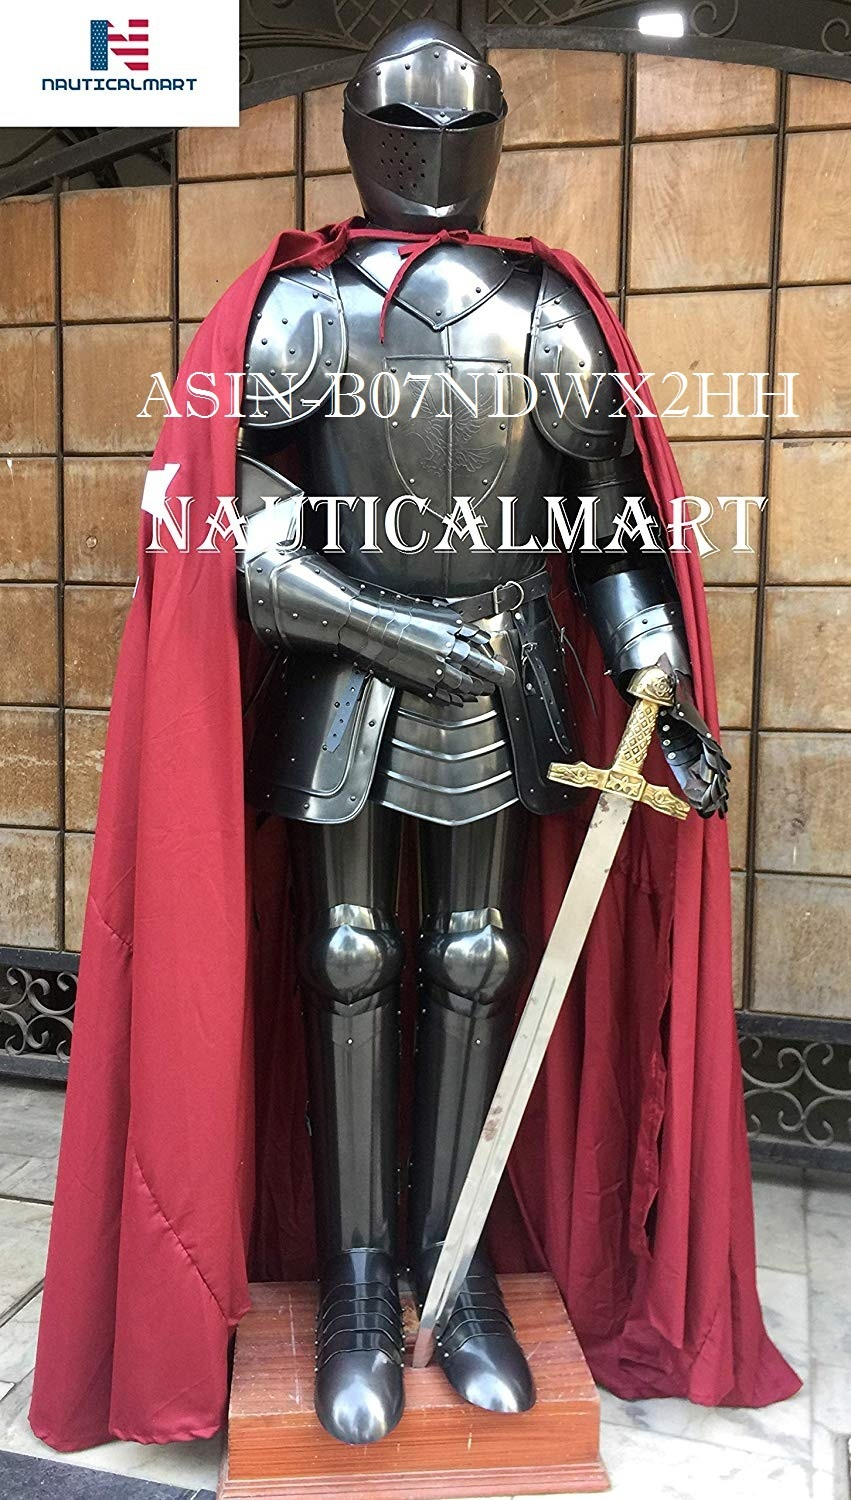 NAUTICALMART Black Knight Medieval Suit of Armor with Sword, Cloak